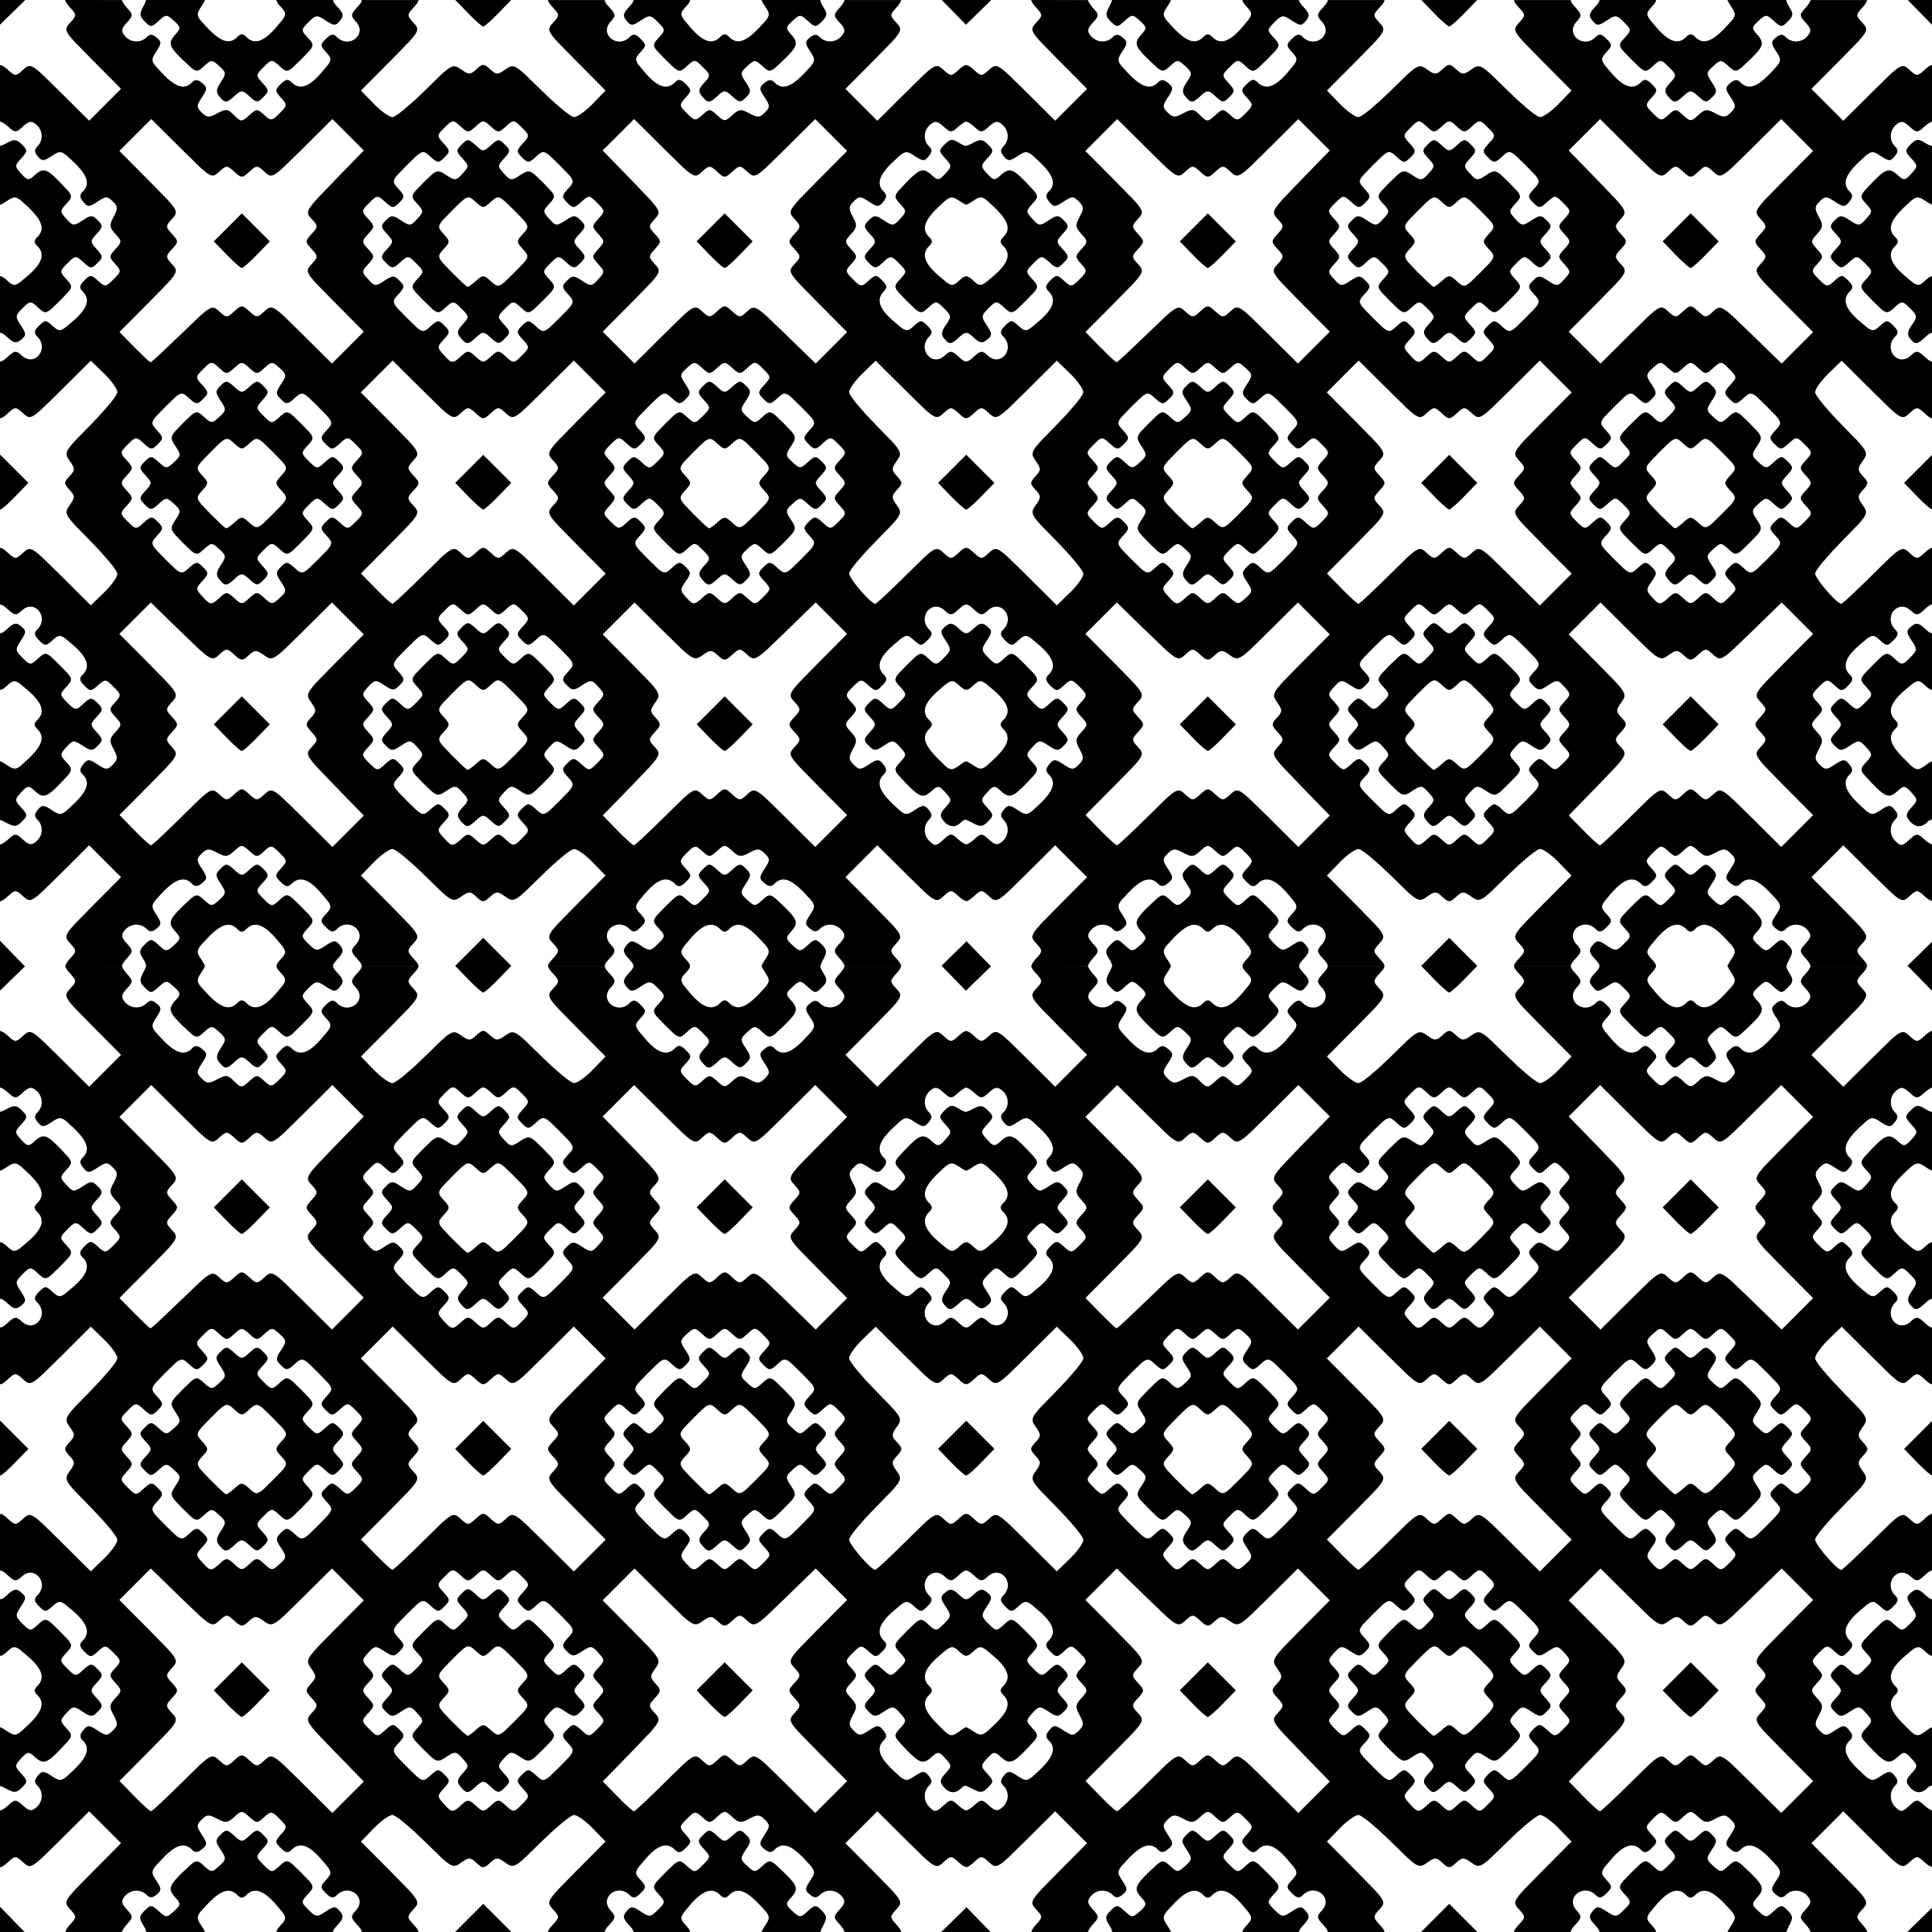 Abstract Tile Pattern 24 by Arvin61r58